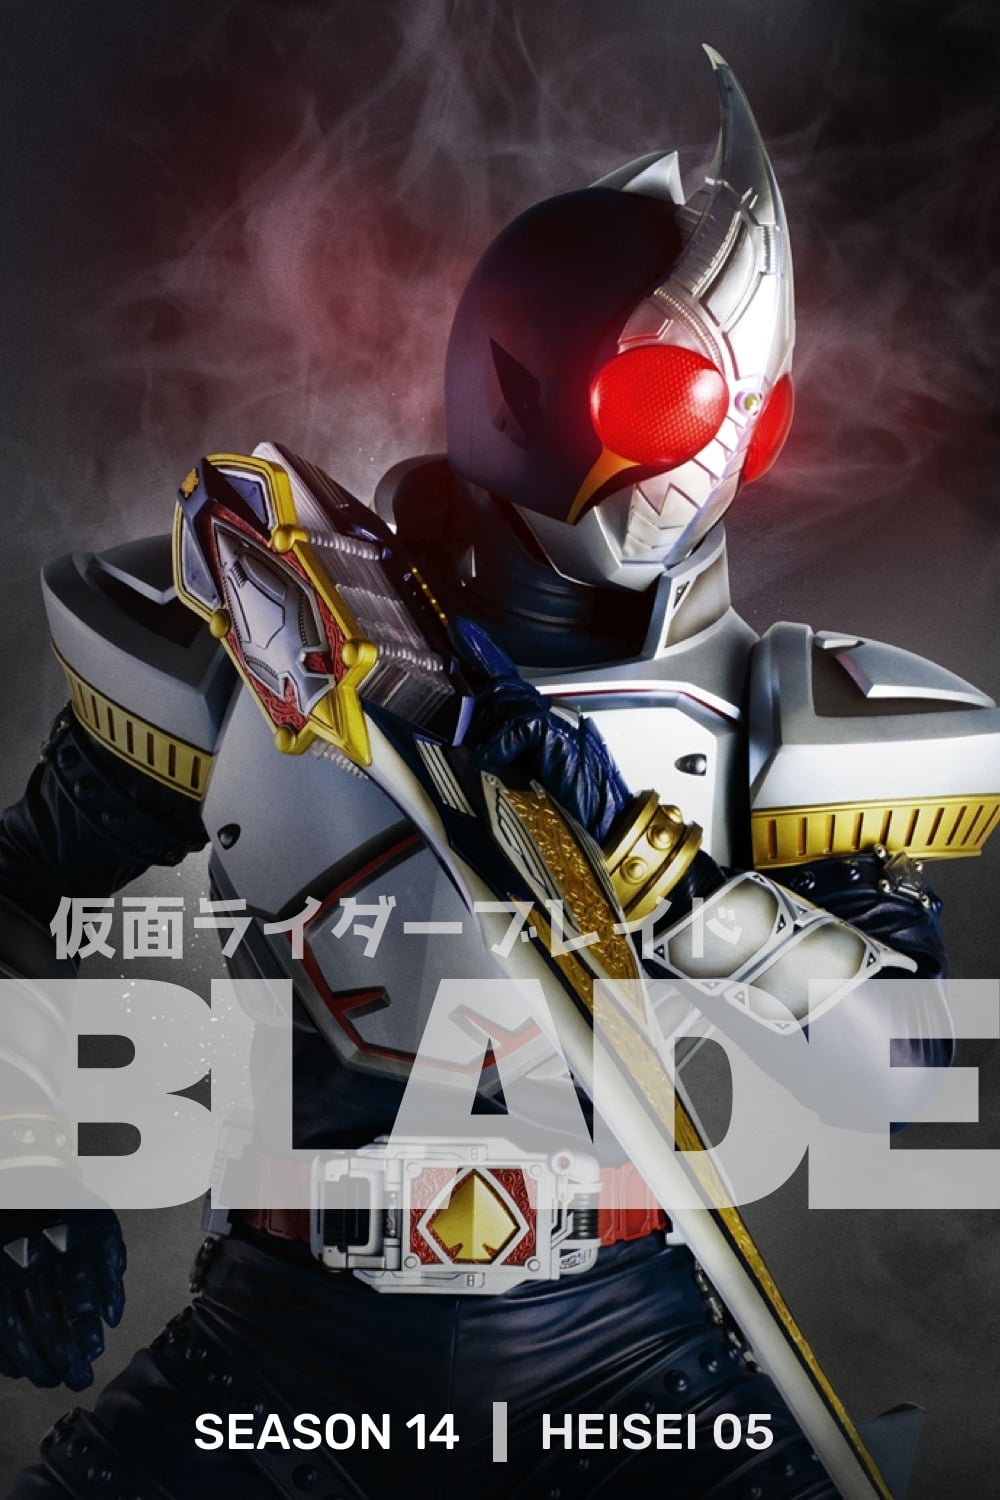 Kamen Rider - Season 21 Episode 42 : Ice, Greeed Form, Broken Wings Season 14